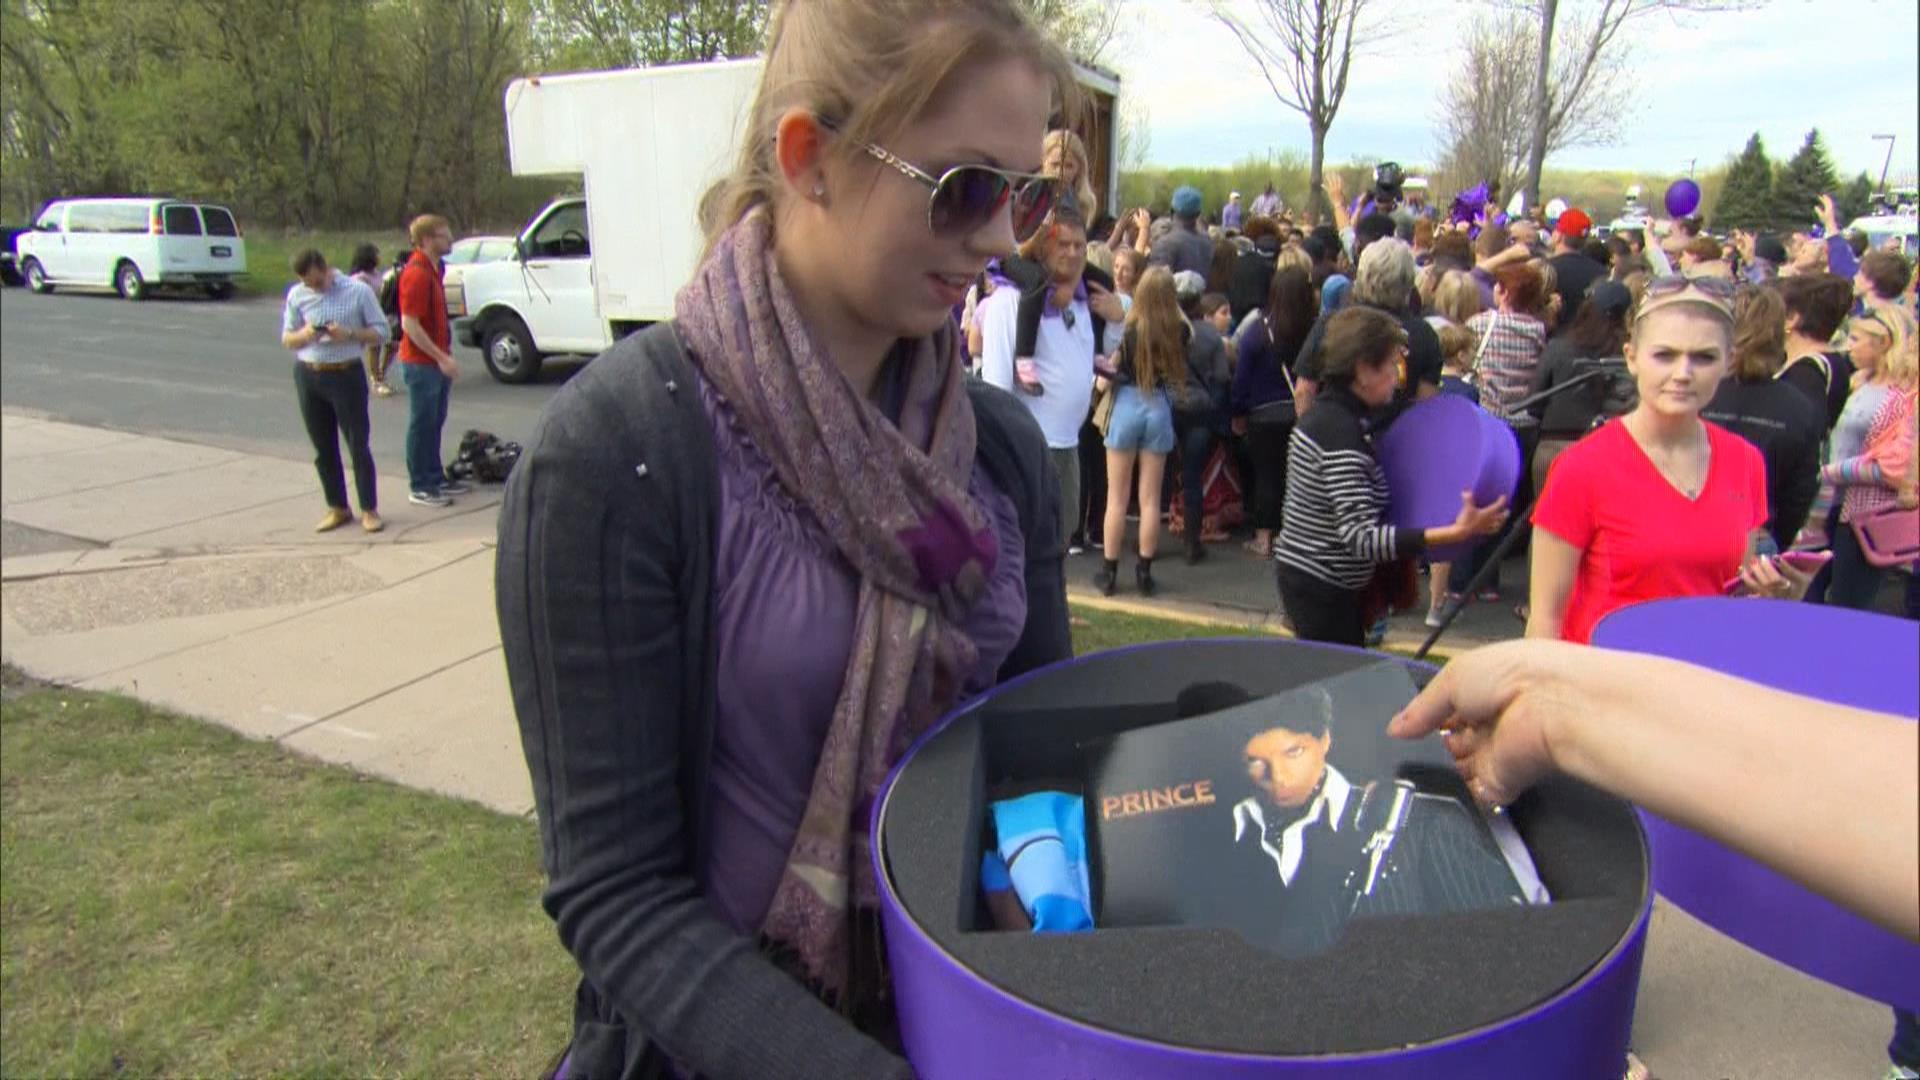 Prince's Remains Cremated, Private 'Beautiful' Ceremony Held